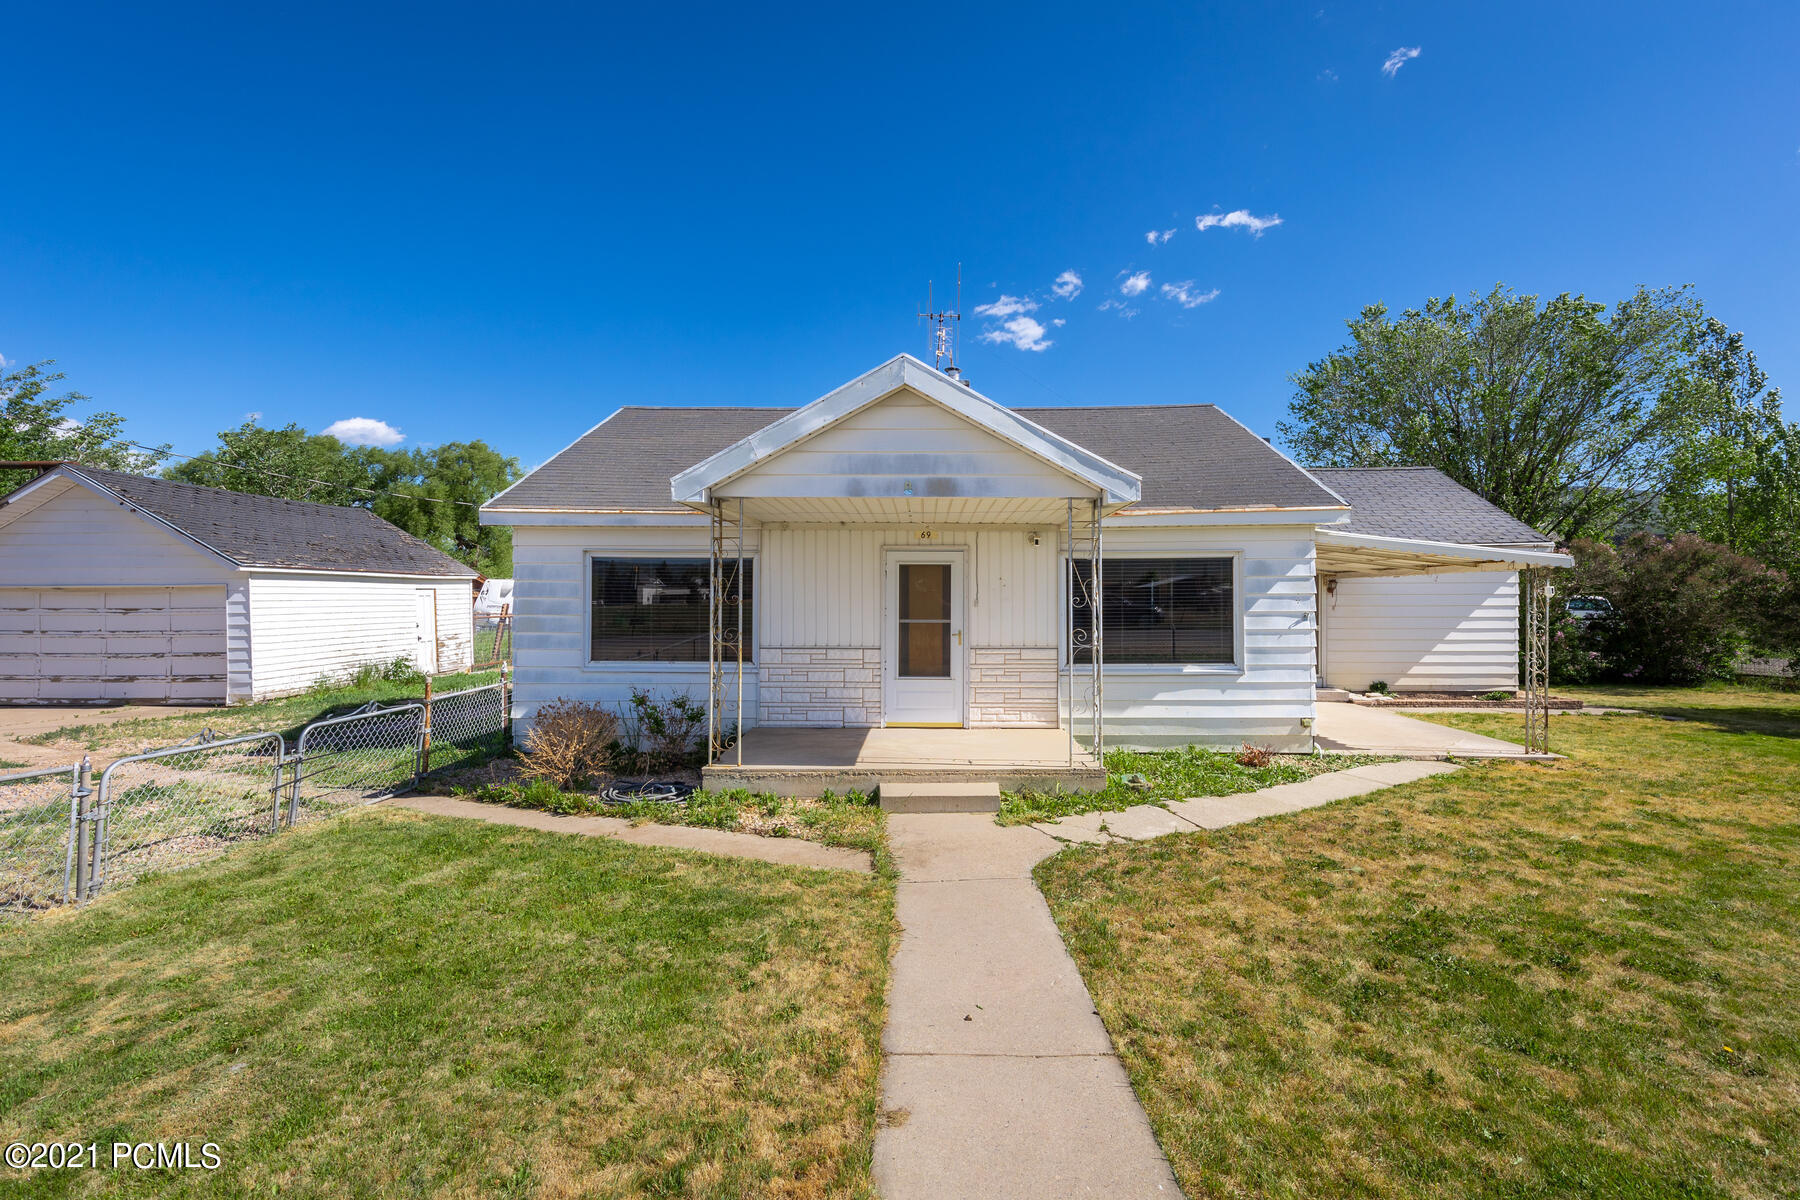 69 2200 South, Francis, Utah 84036, 3 Bedrooms Bedrooms, ,1 BathroomBathrooms,Single Family,For Sale,2200,12102429